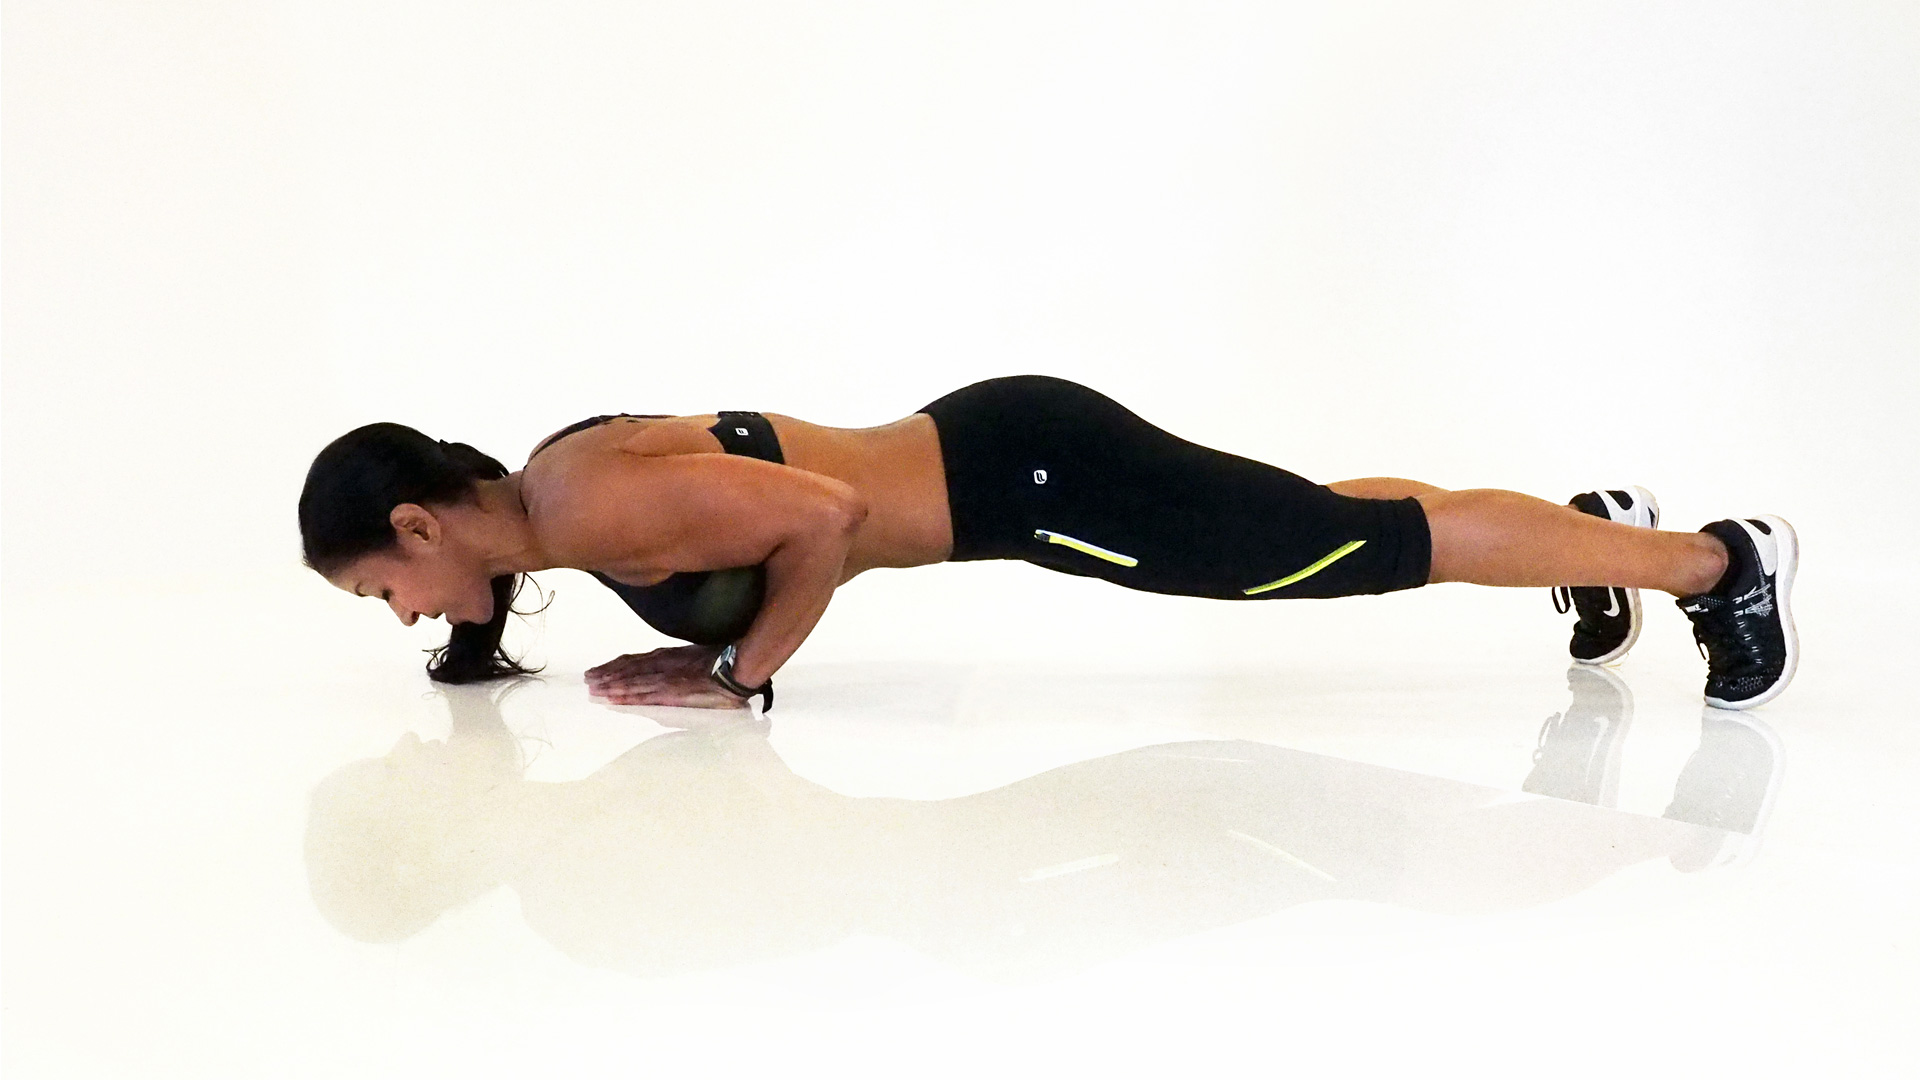 Push Hands up Push-up Position You May